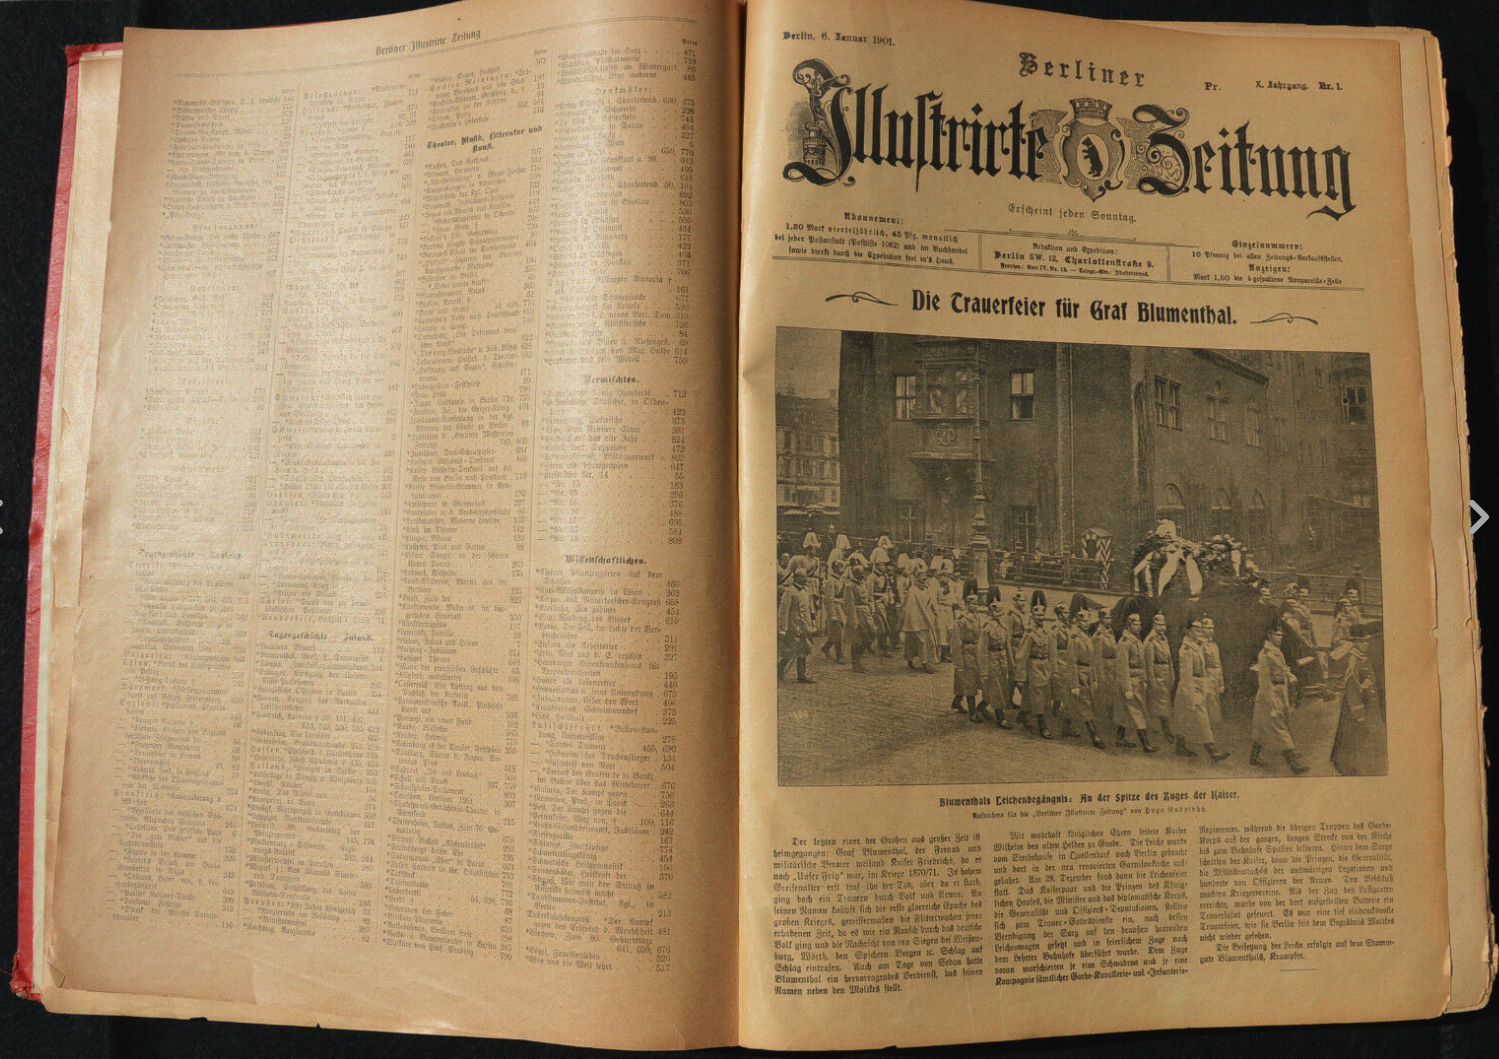 First issue of the Berliner Illustrirte Zeitung.